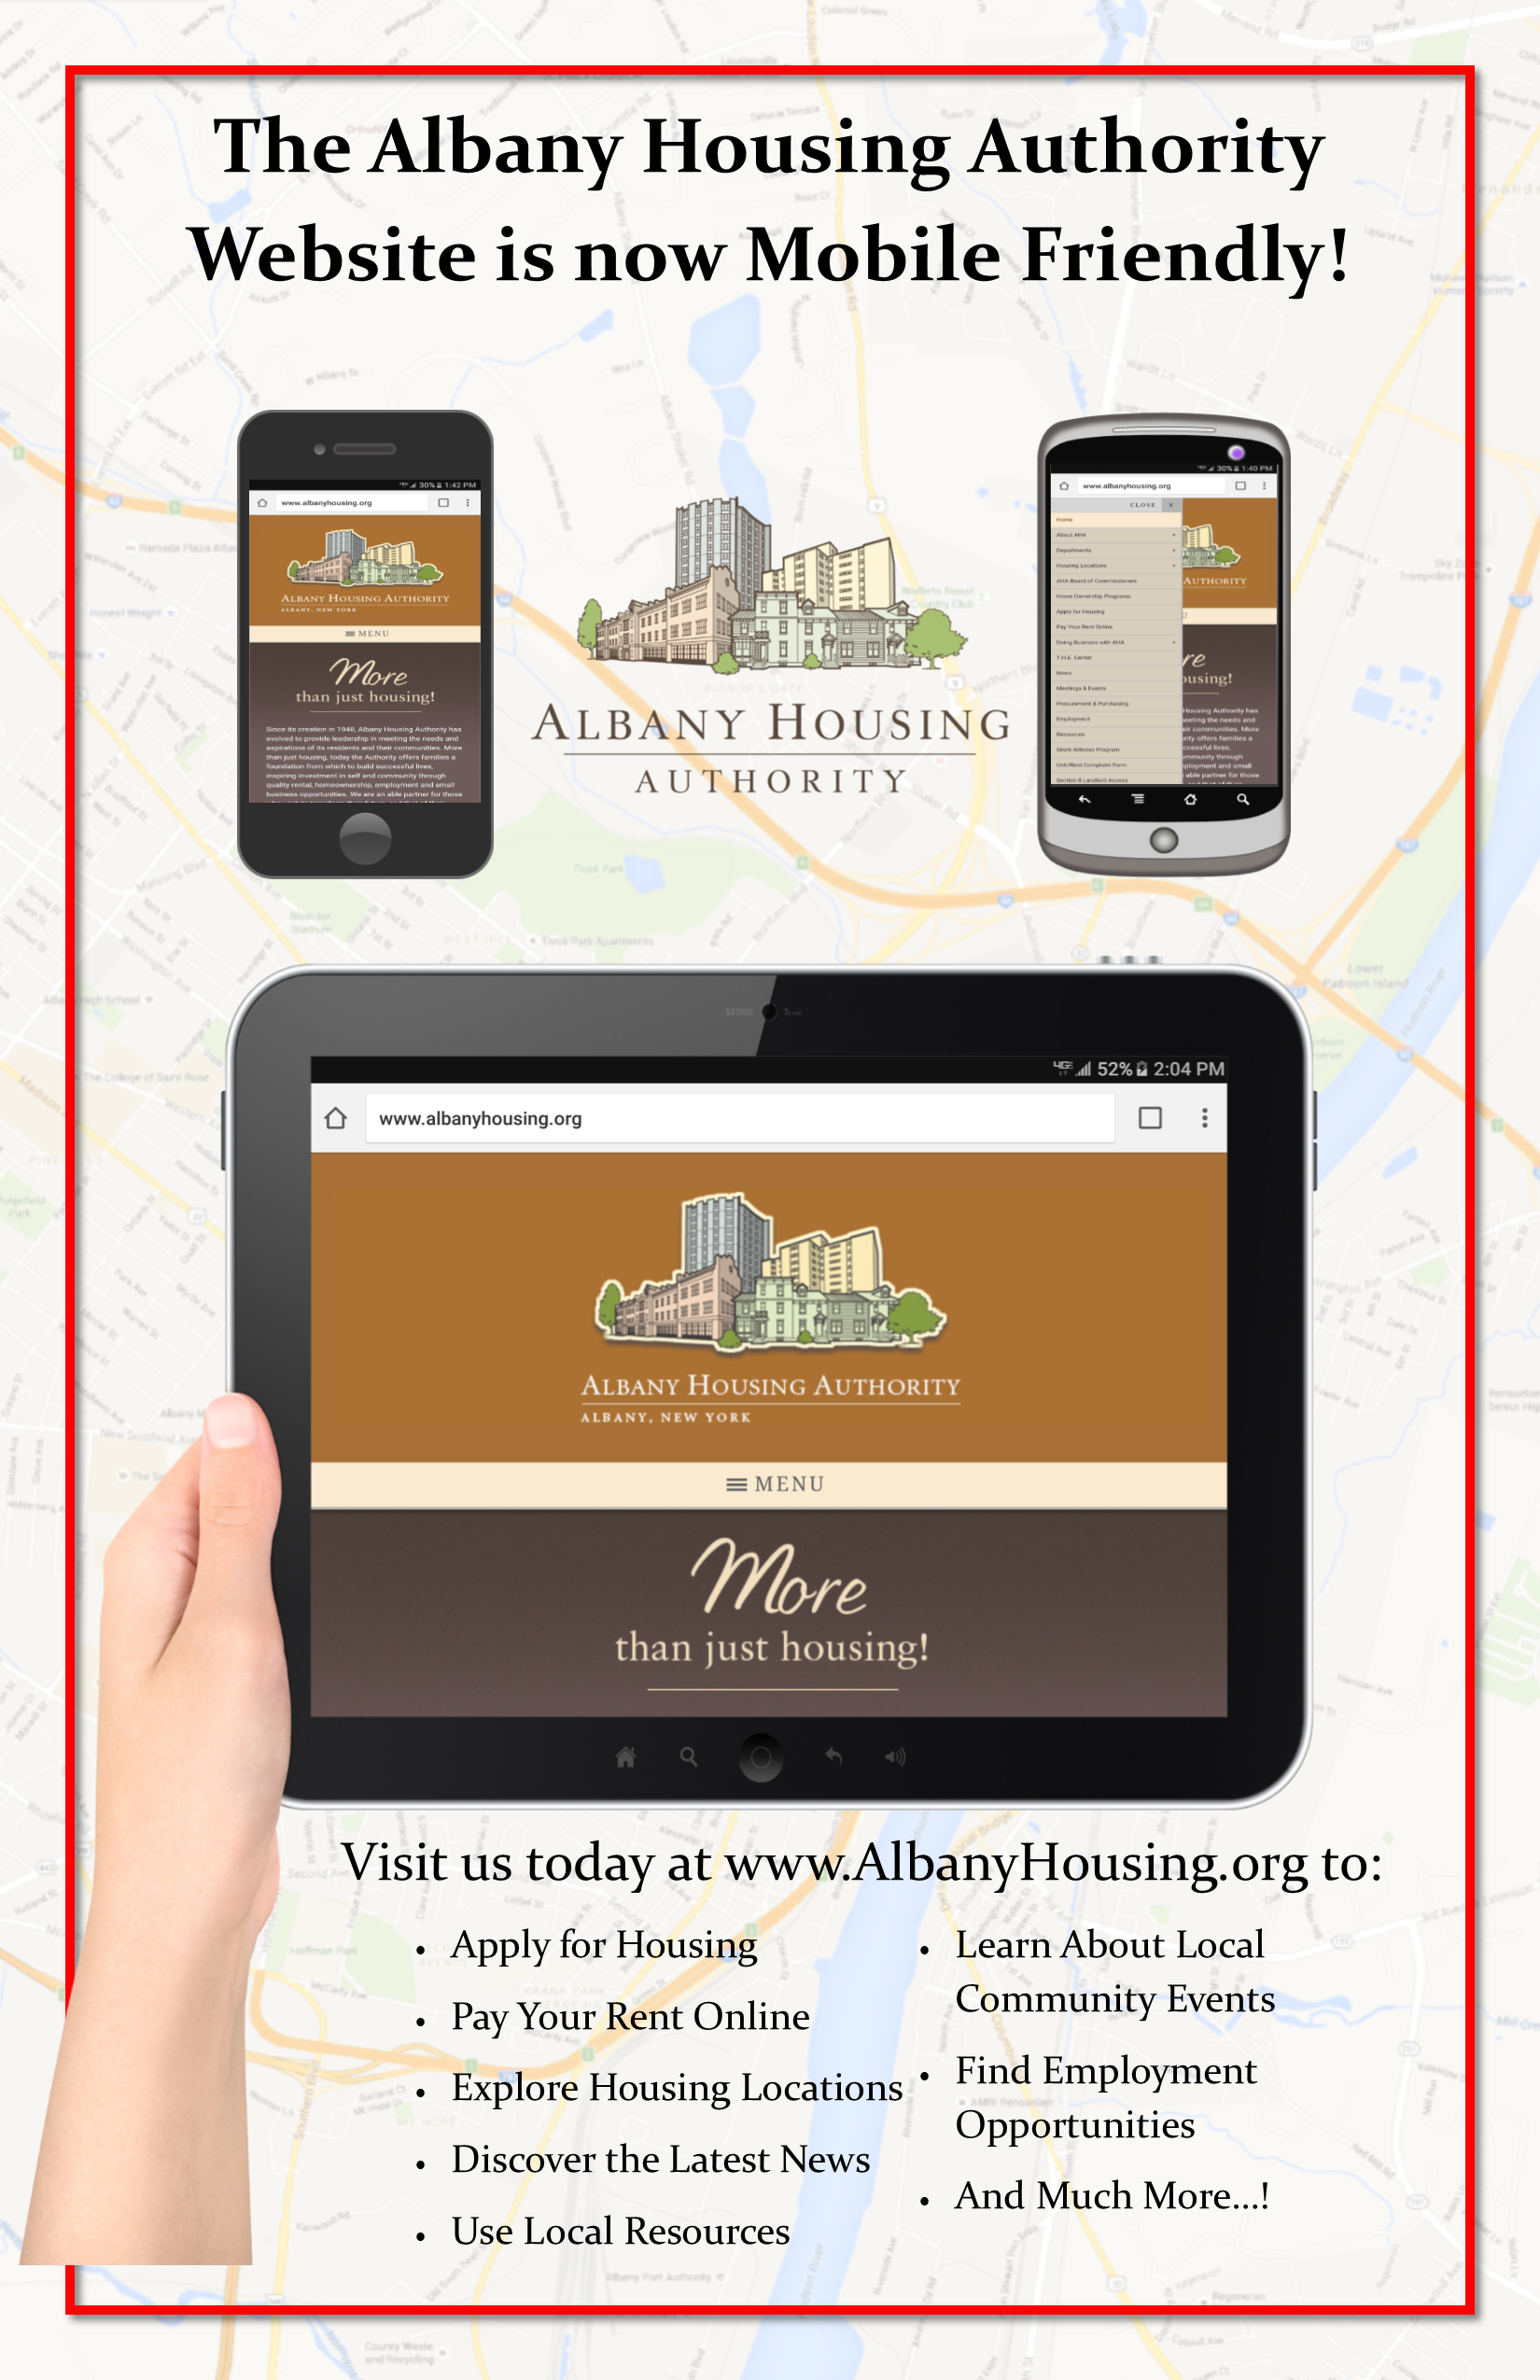 The Albany Housing Authority Website is now Mobile Friendly